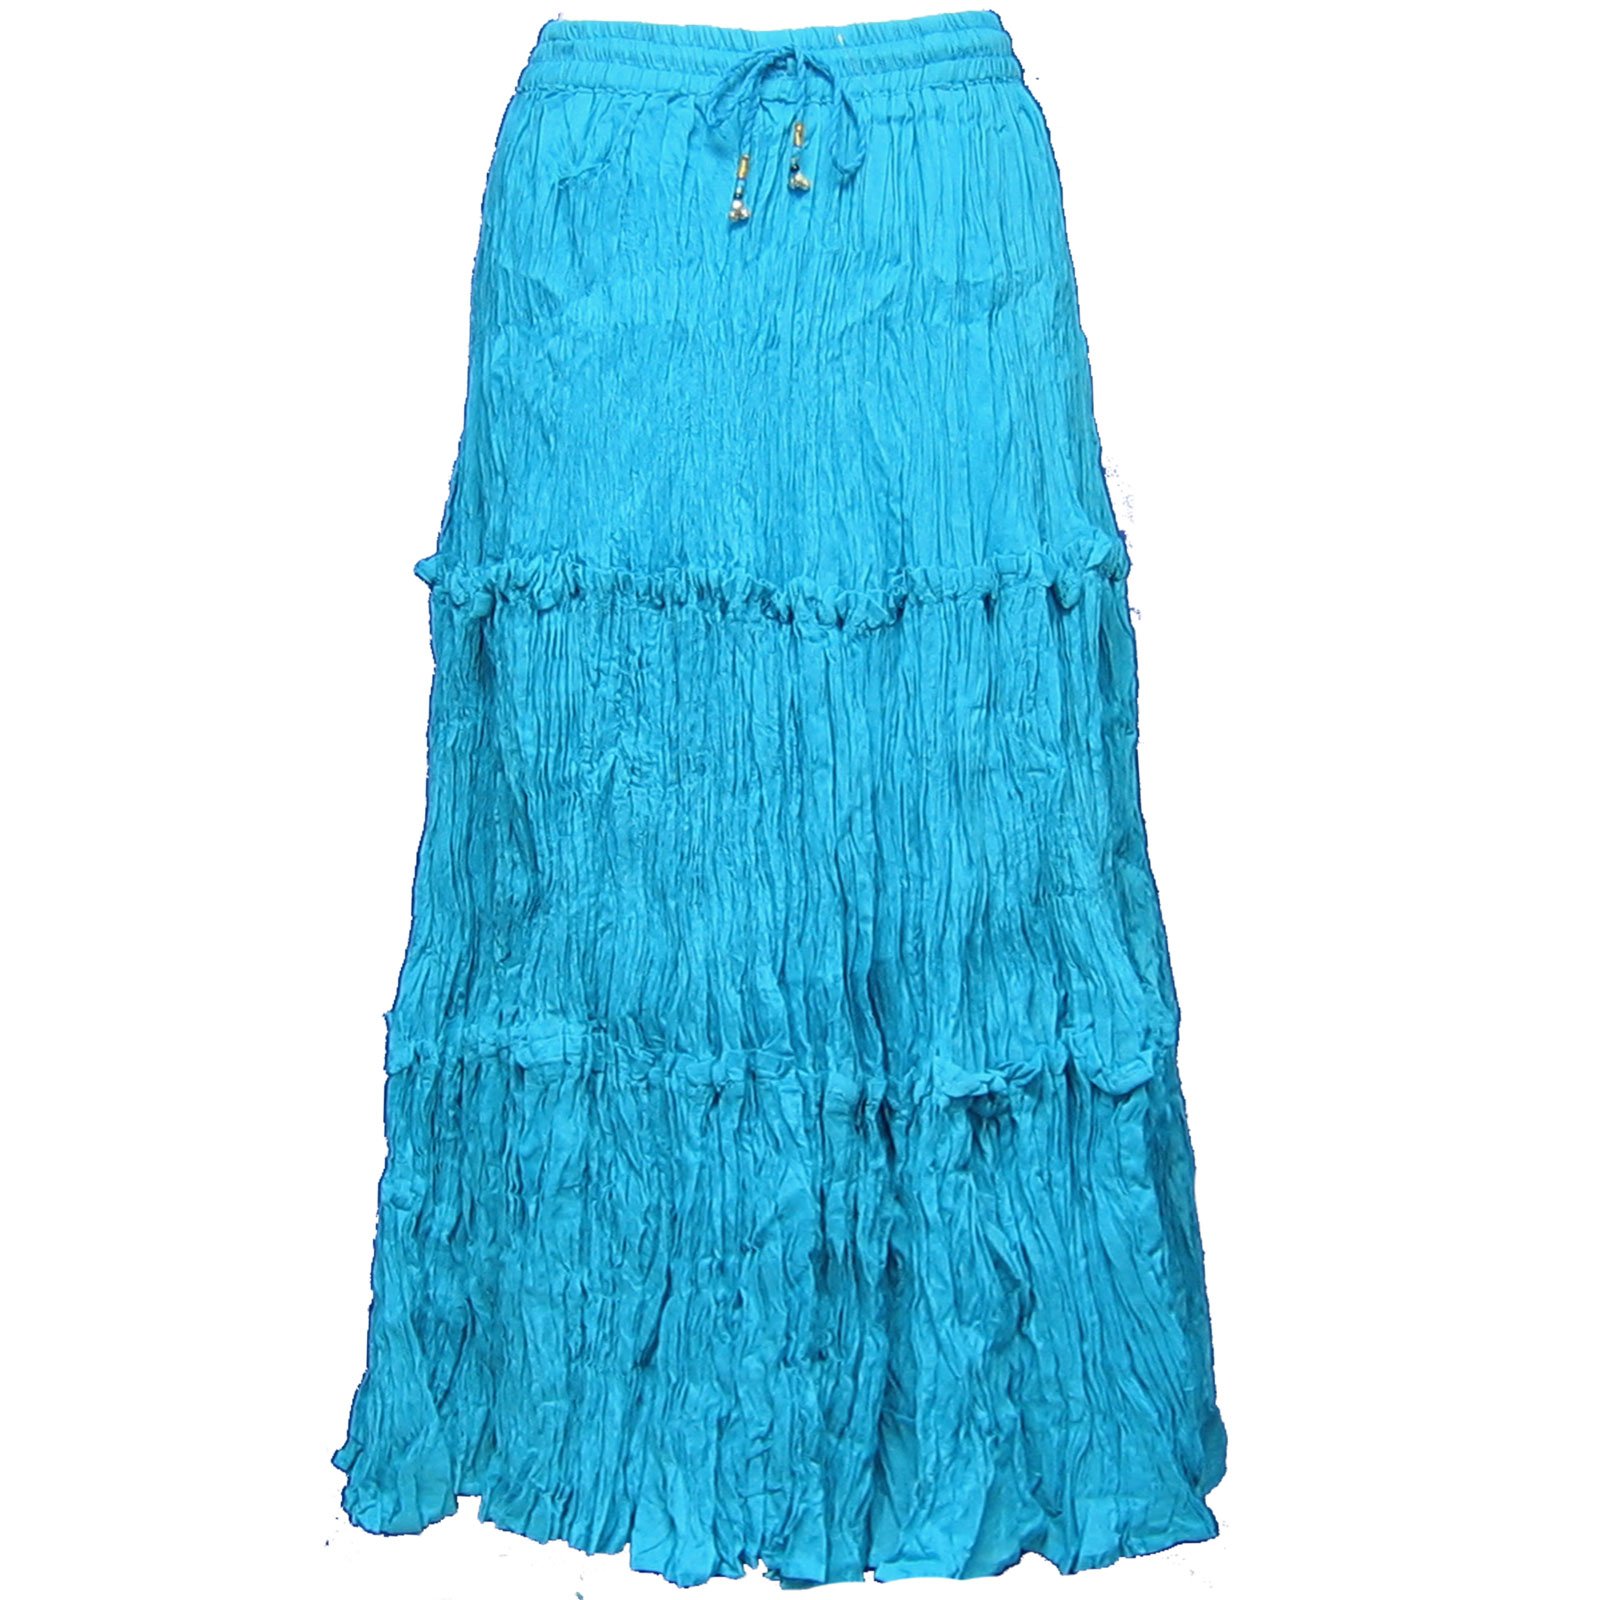 Wholesale Skirts - Cotton Three Tier Broomstick 500 & 529 Ankle Length - Turquoise - One Size (S-XL)